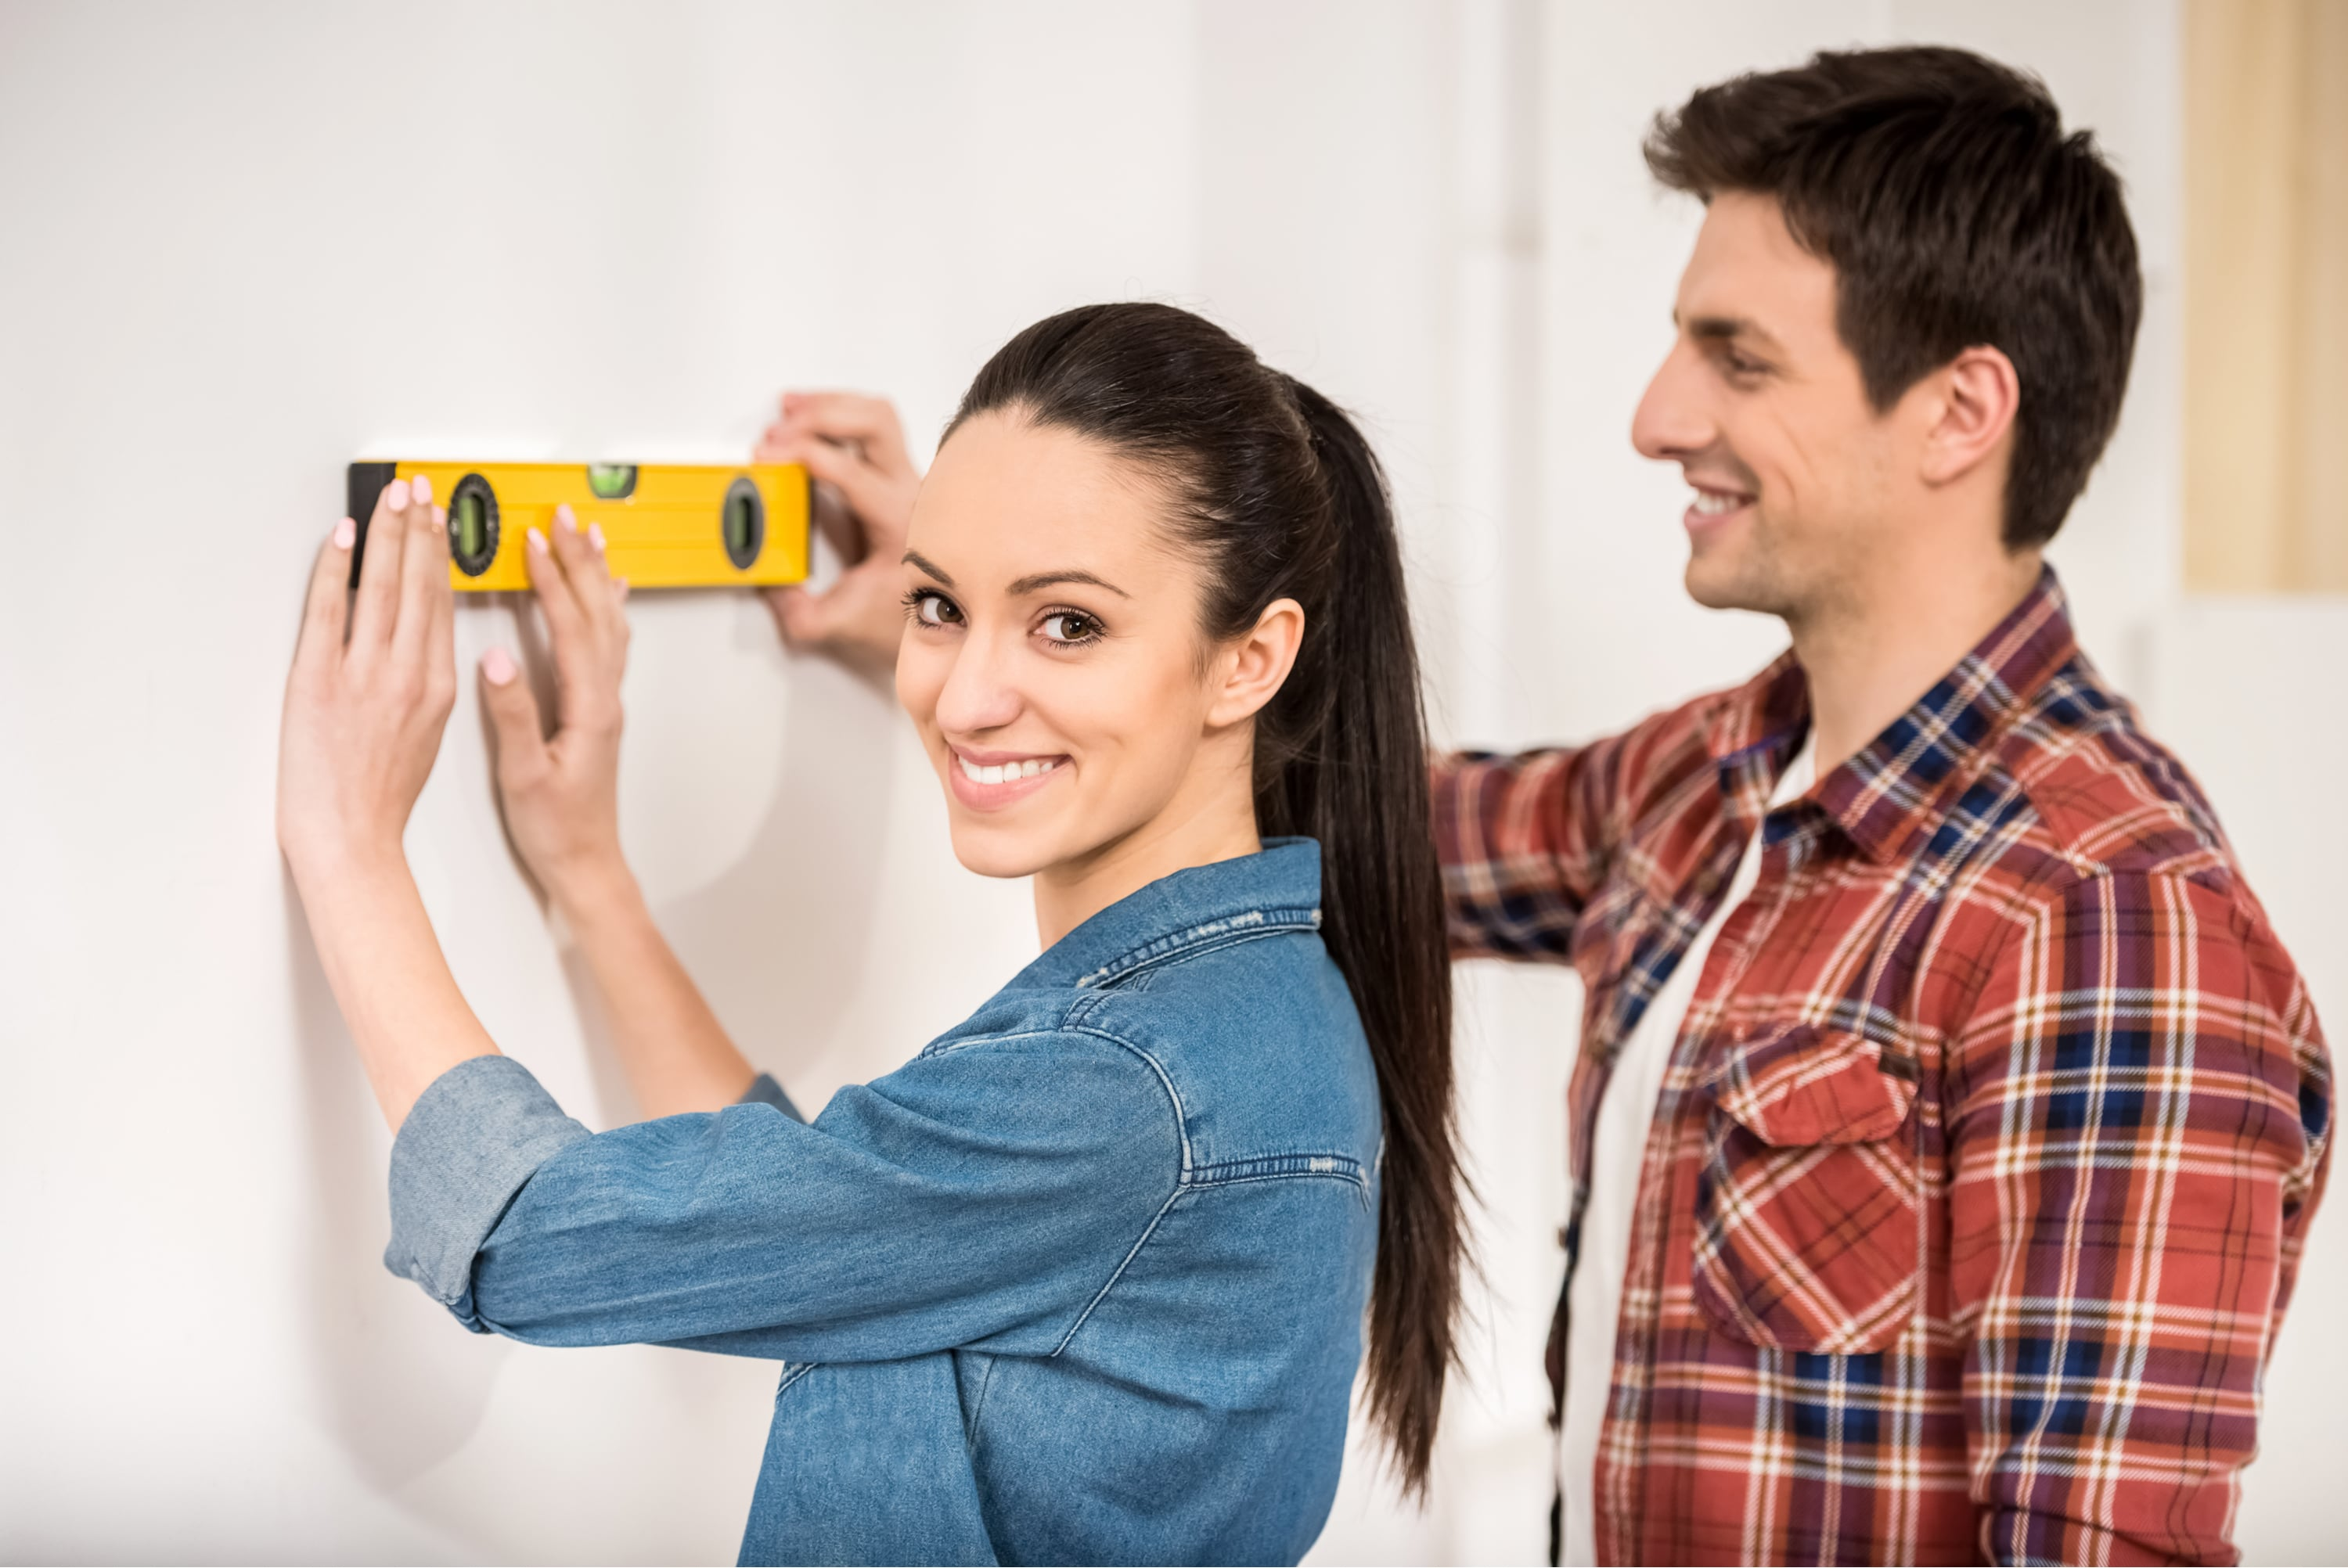 Do Yourself Home Improvement Project Do It Yourself Diy Or Hire A Contractor For Home